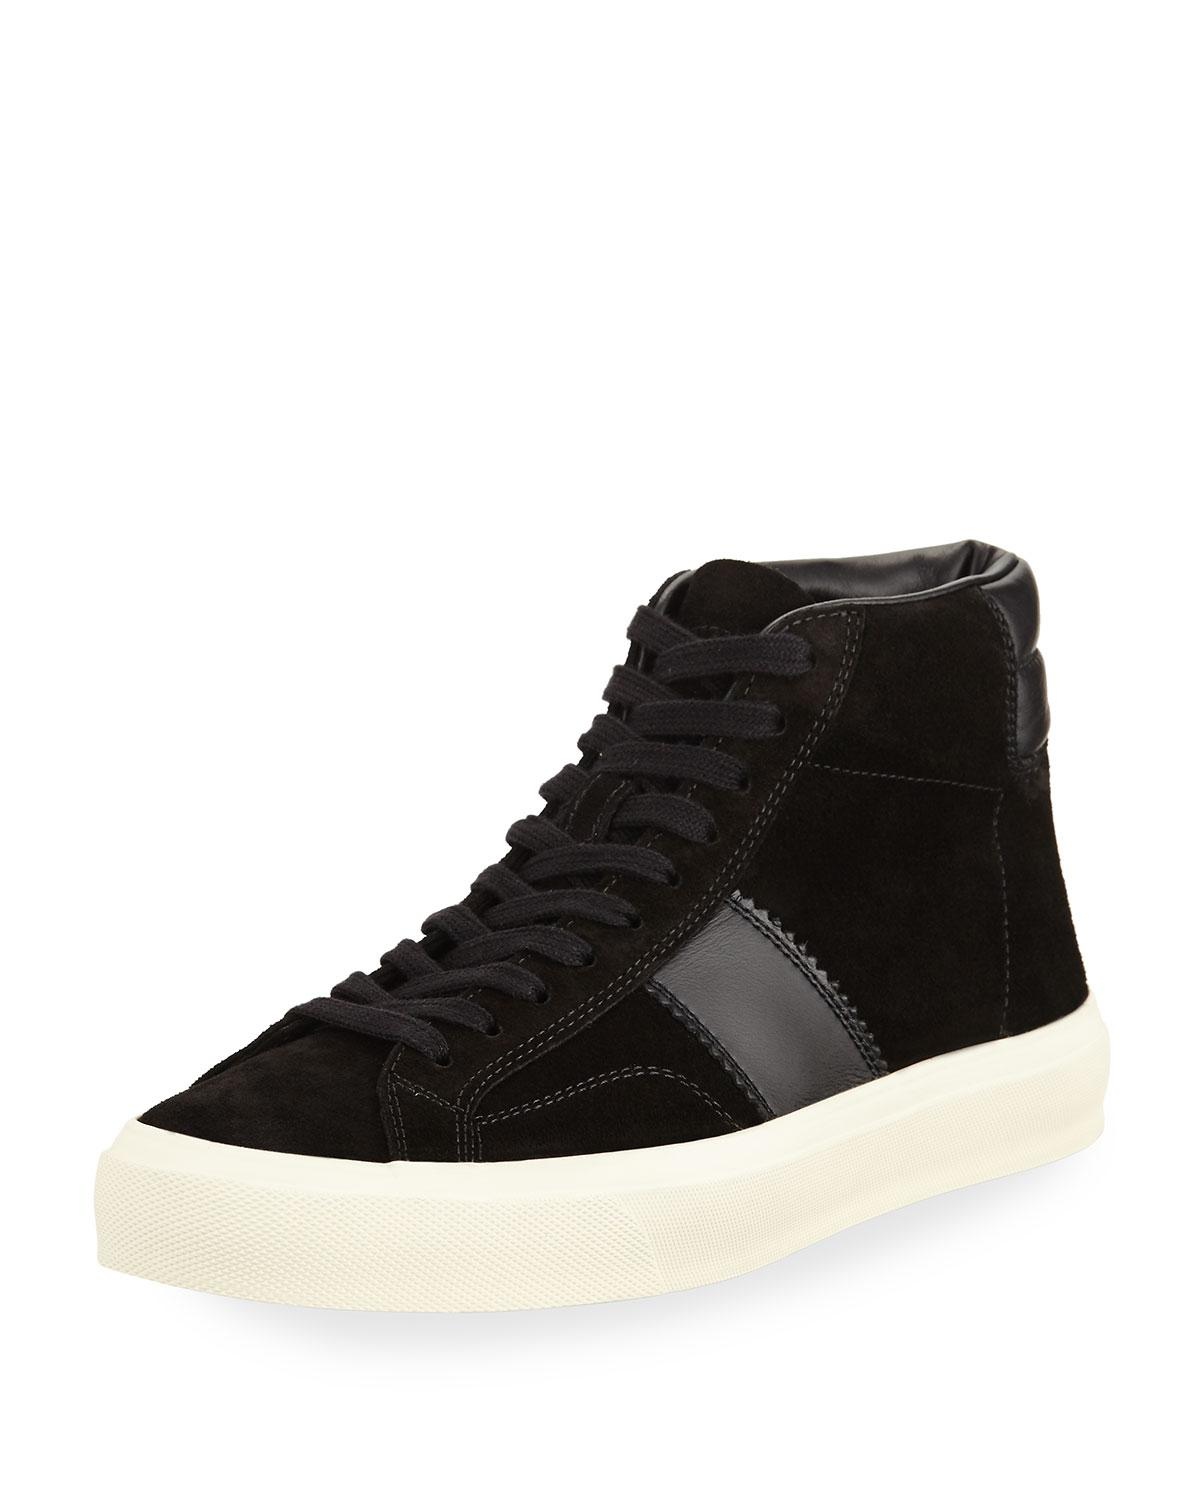 Tom FordSneakers High suede bMEIzfe